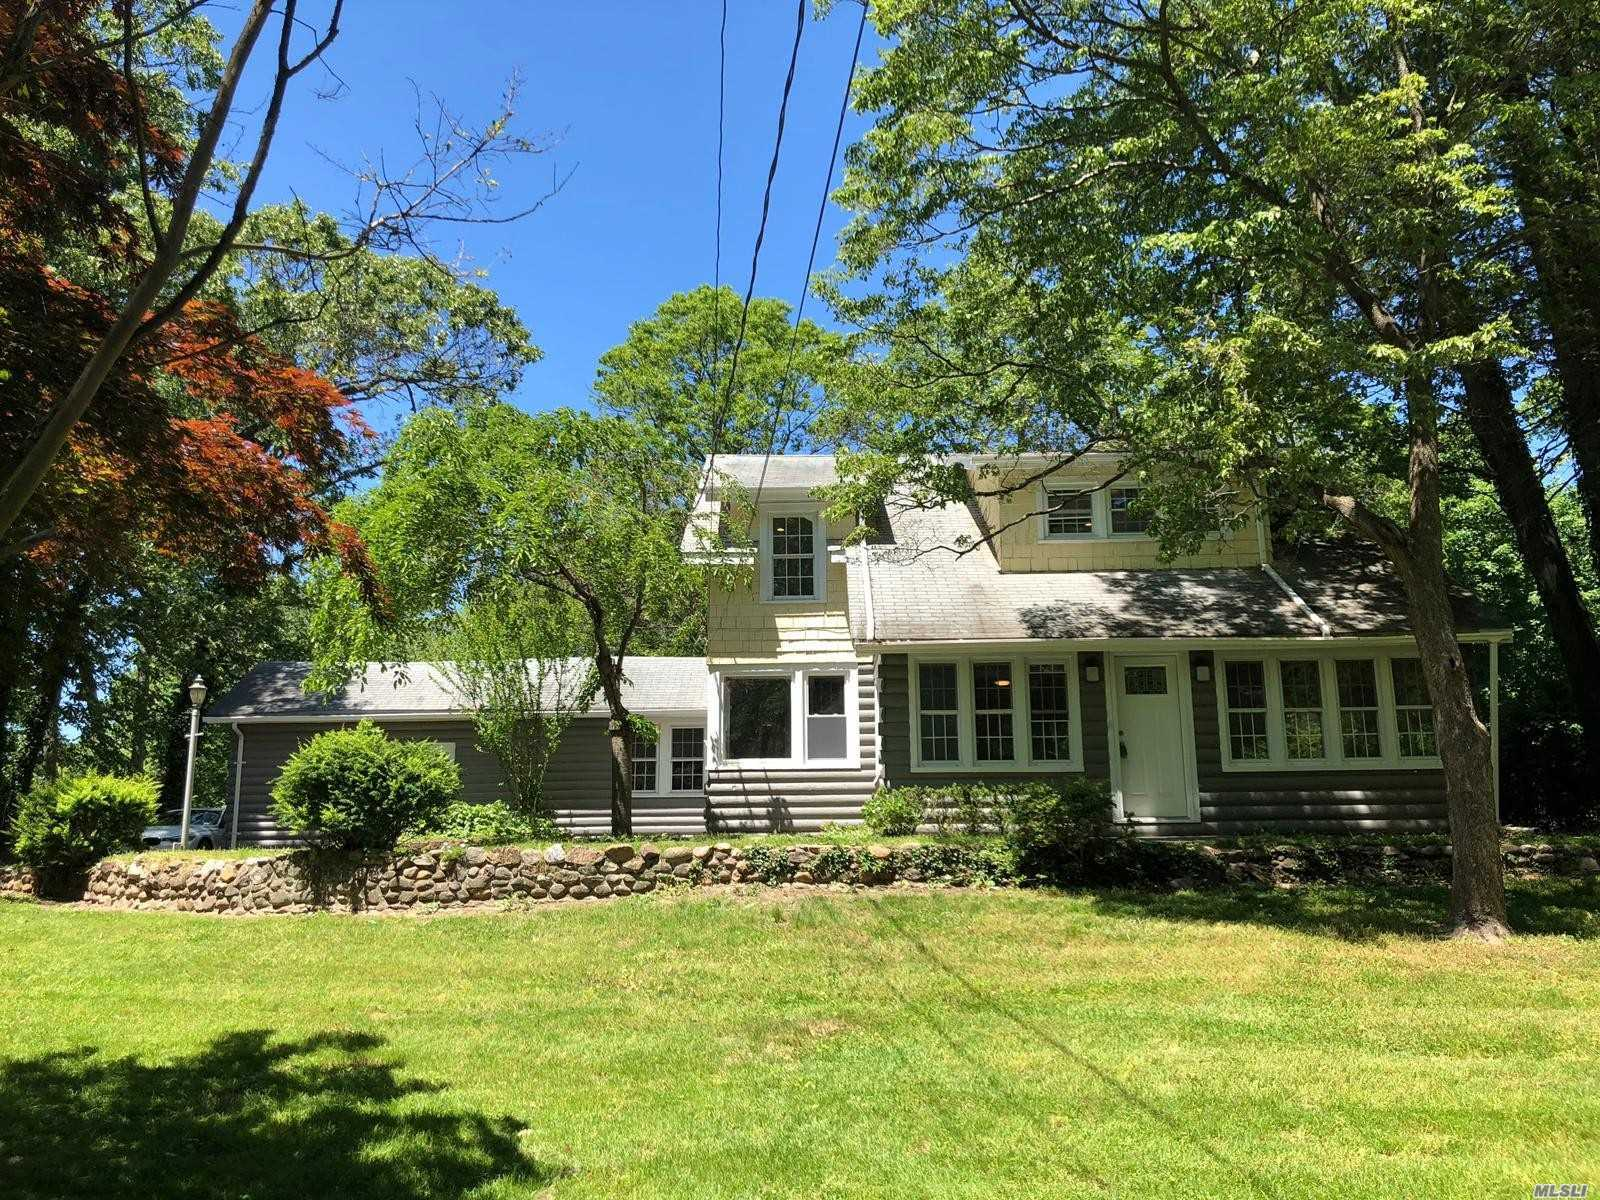 Beautifully Renovated Colonial style house, Featuring 5 Bedrooms, 2 full Bathrooms, Central Air Wood floors and carpeted bedrooms, LED lighting throughout , Swimming Pool, full unfinished basement,